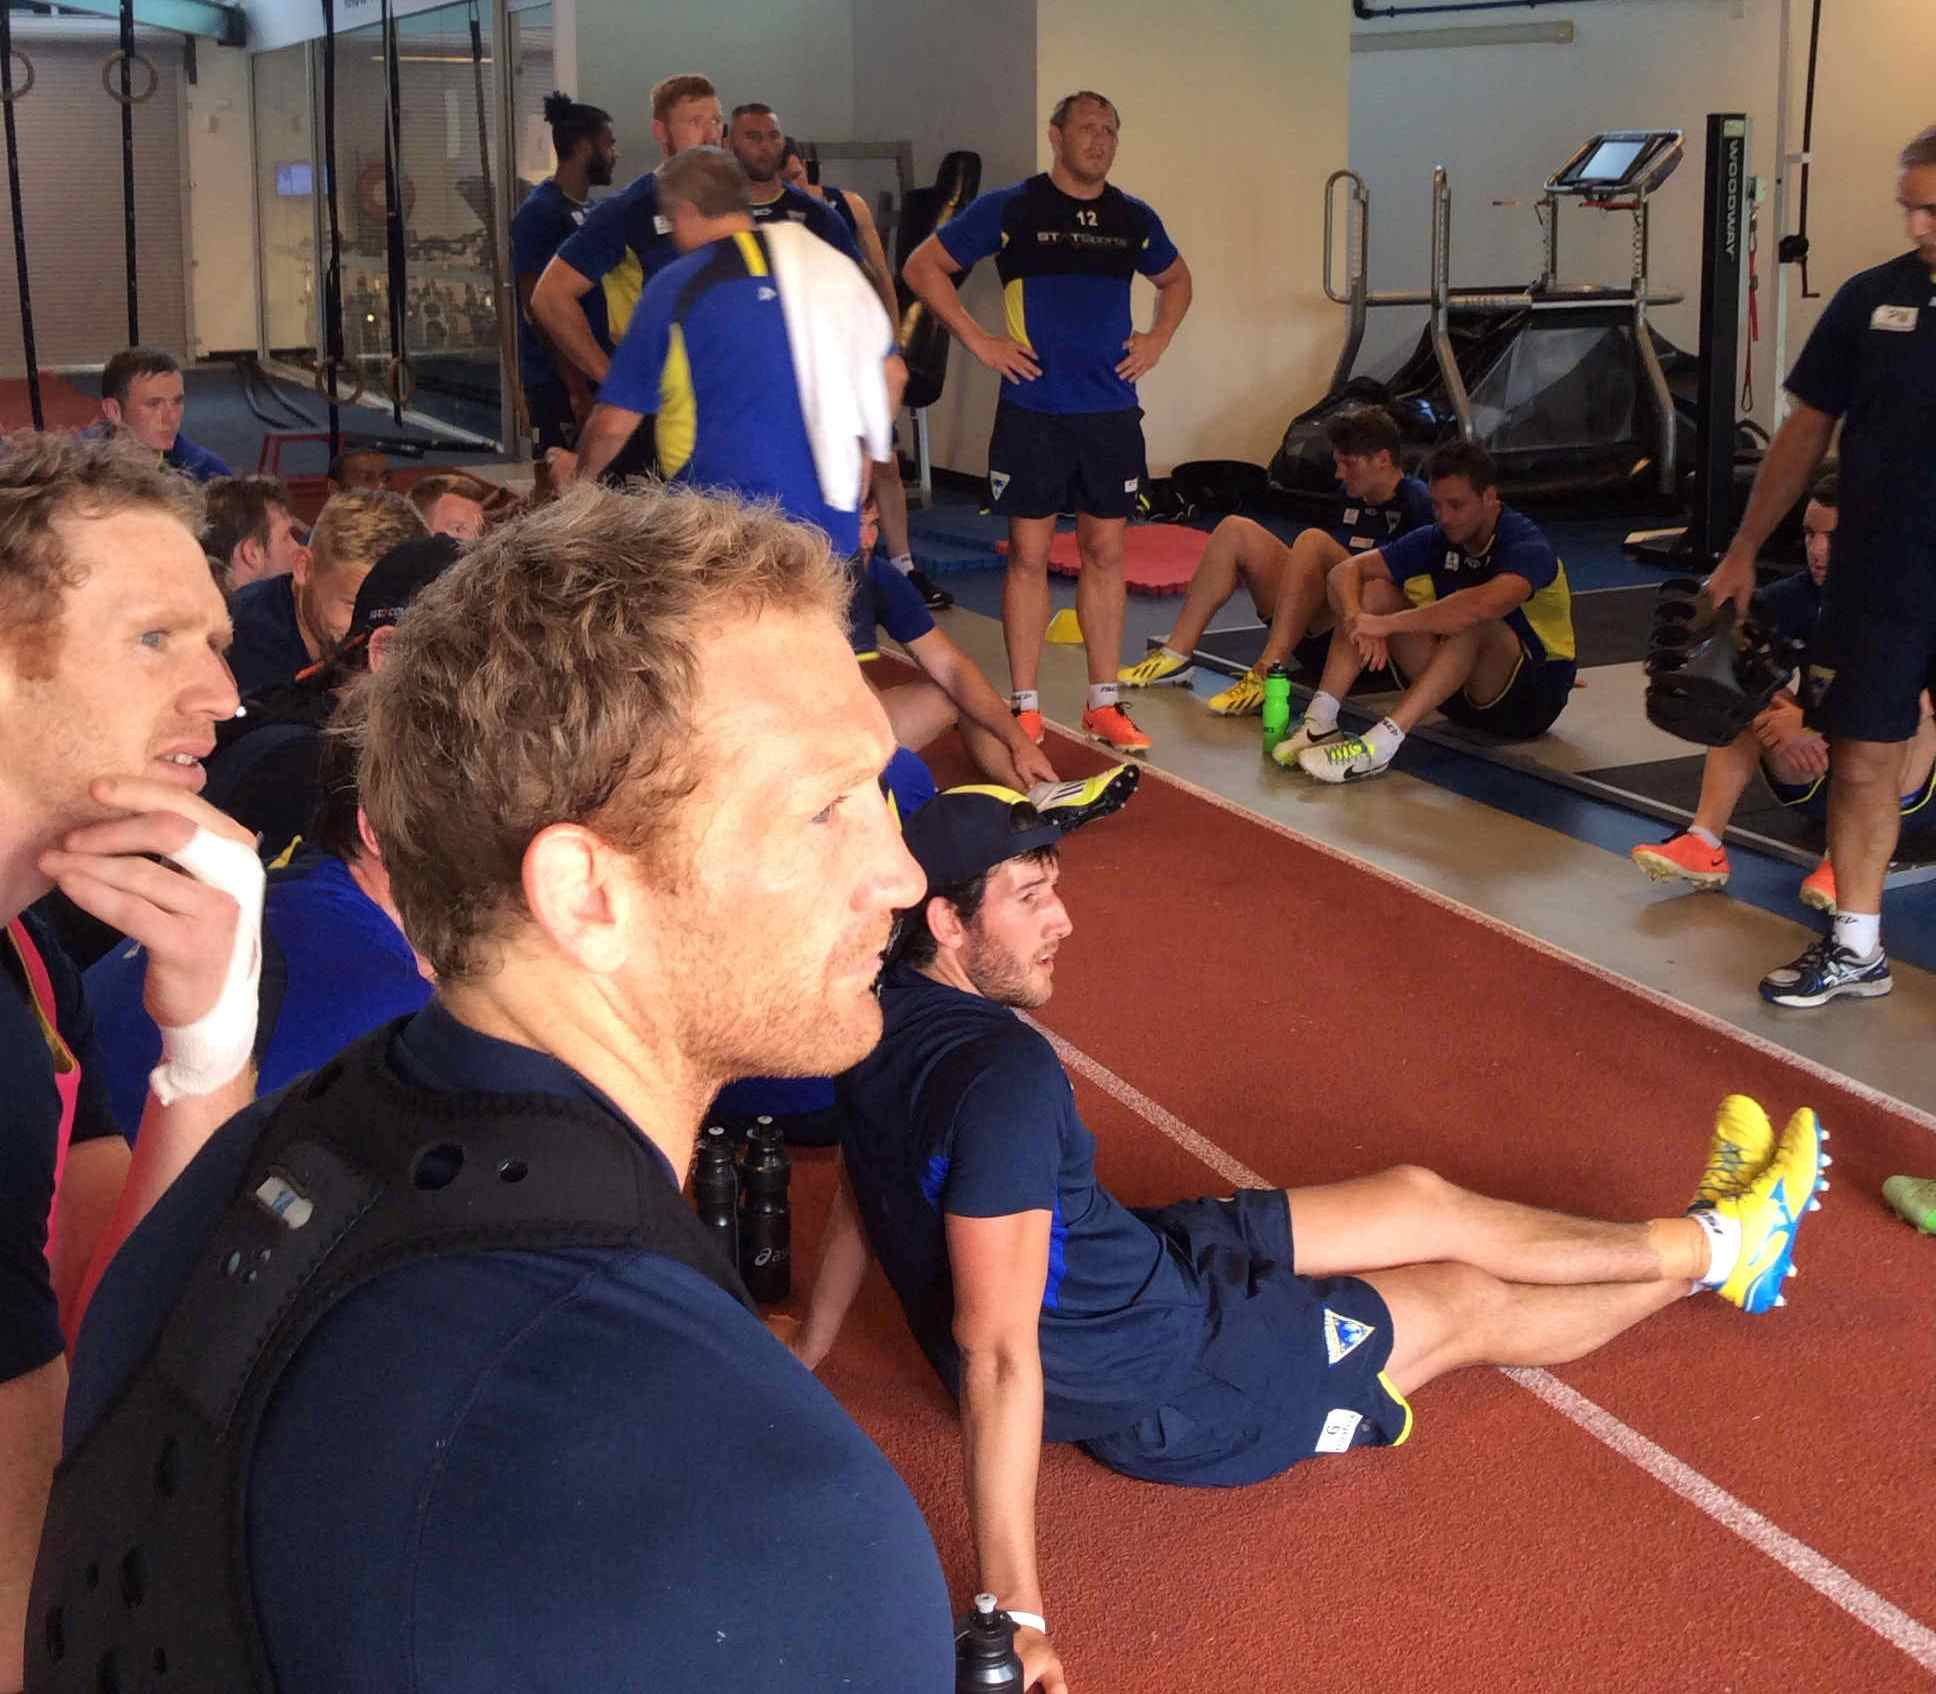 PICTURES: Wolves train with NRL club Canterbury Bulldogs